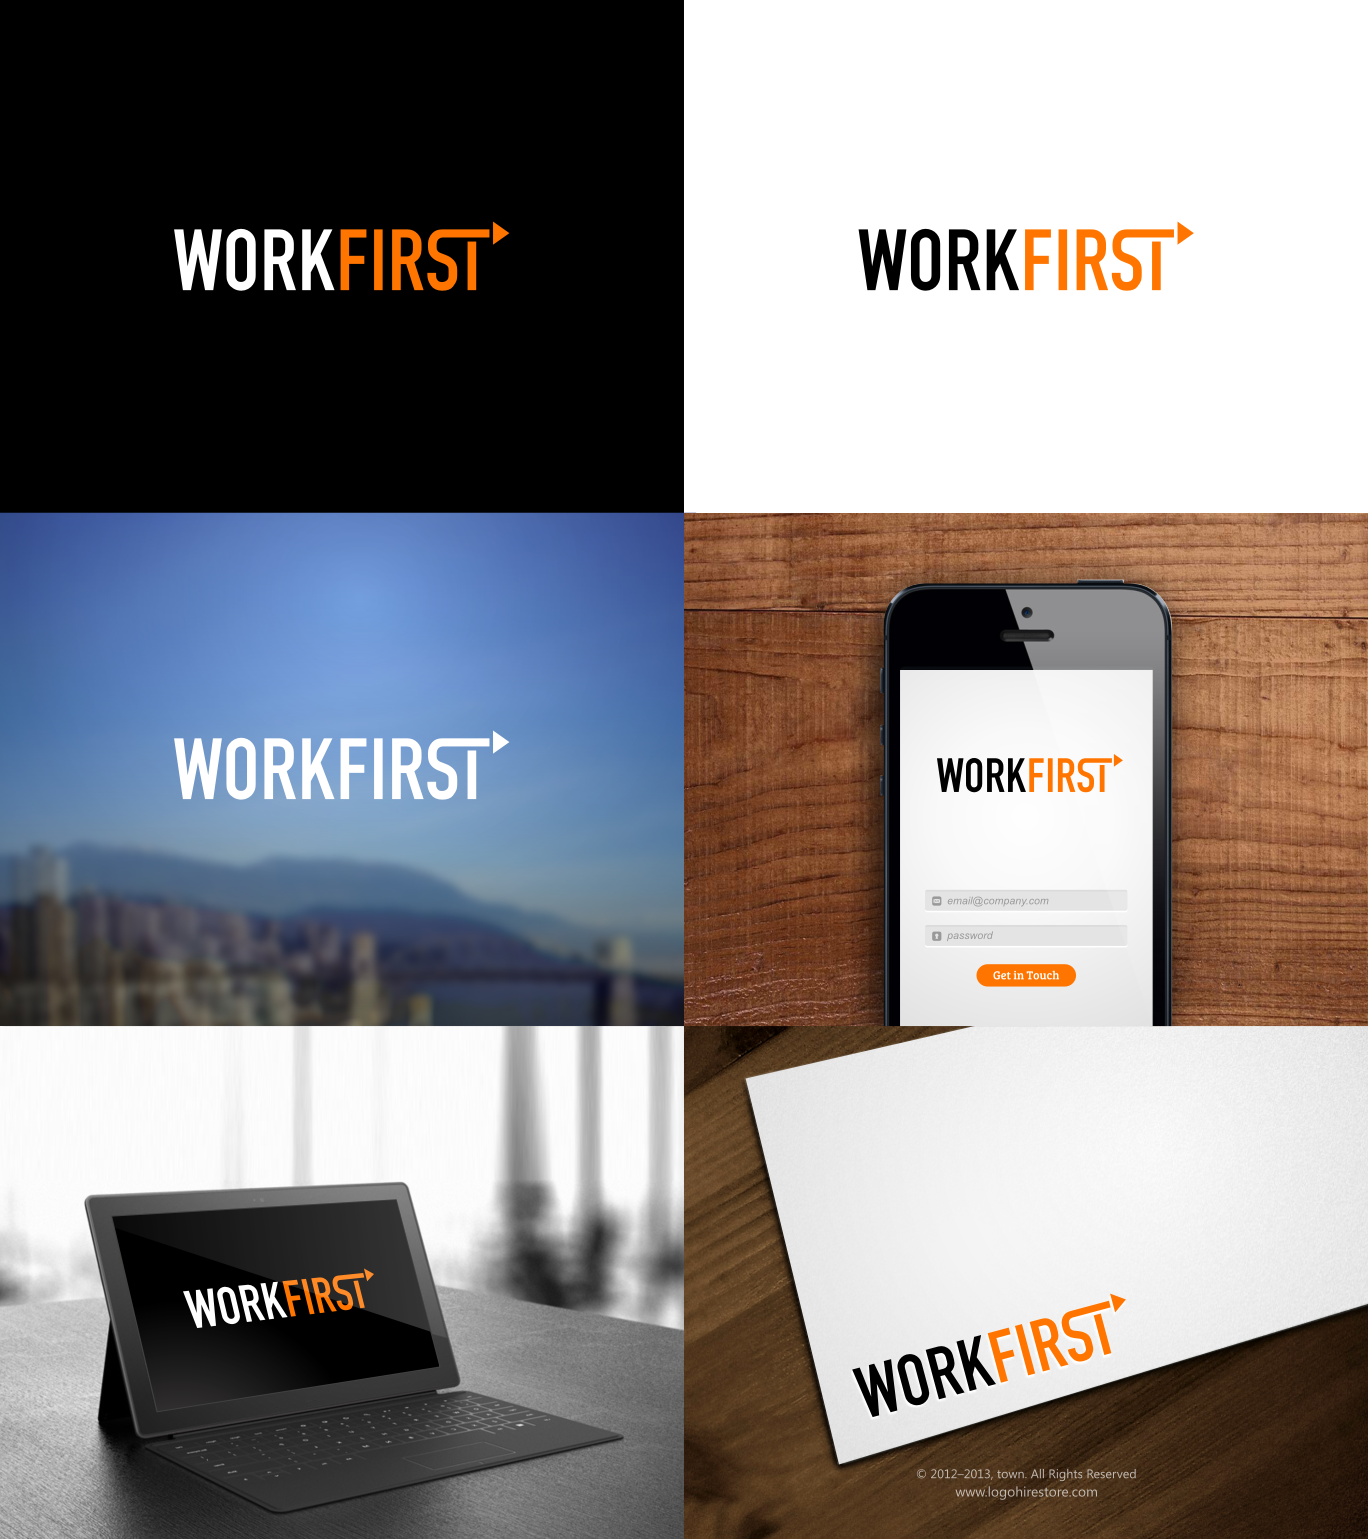 Create the logo and brand for WorkFirst